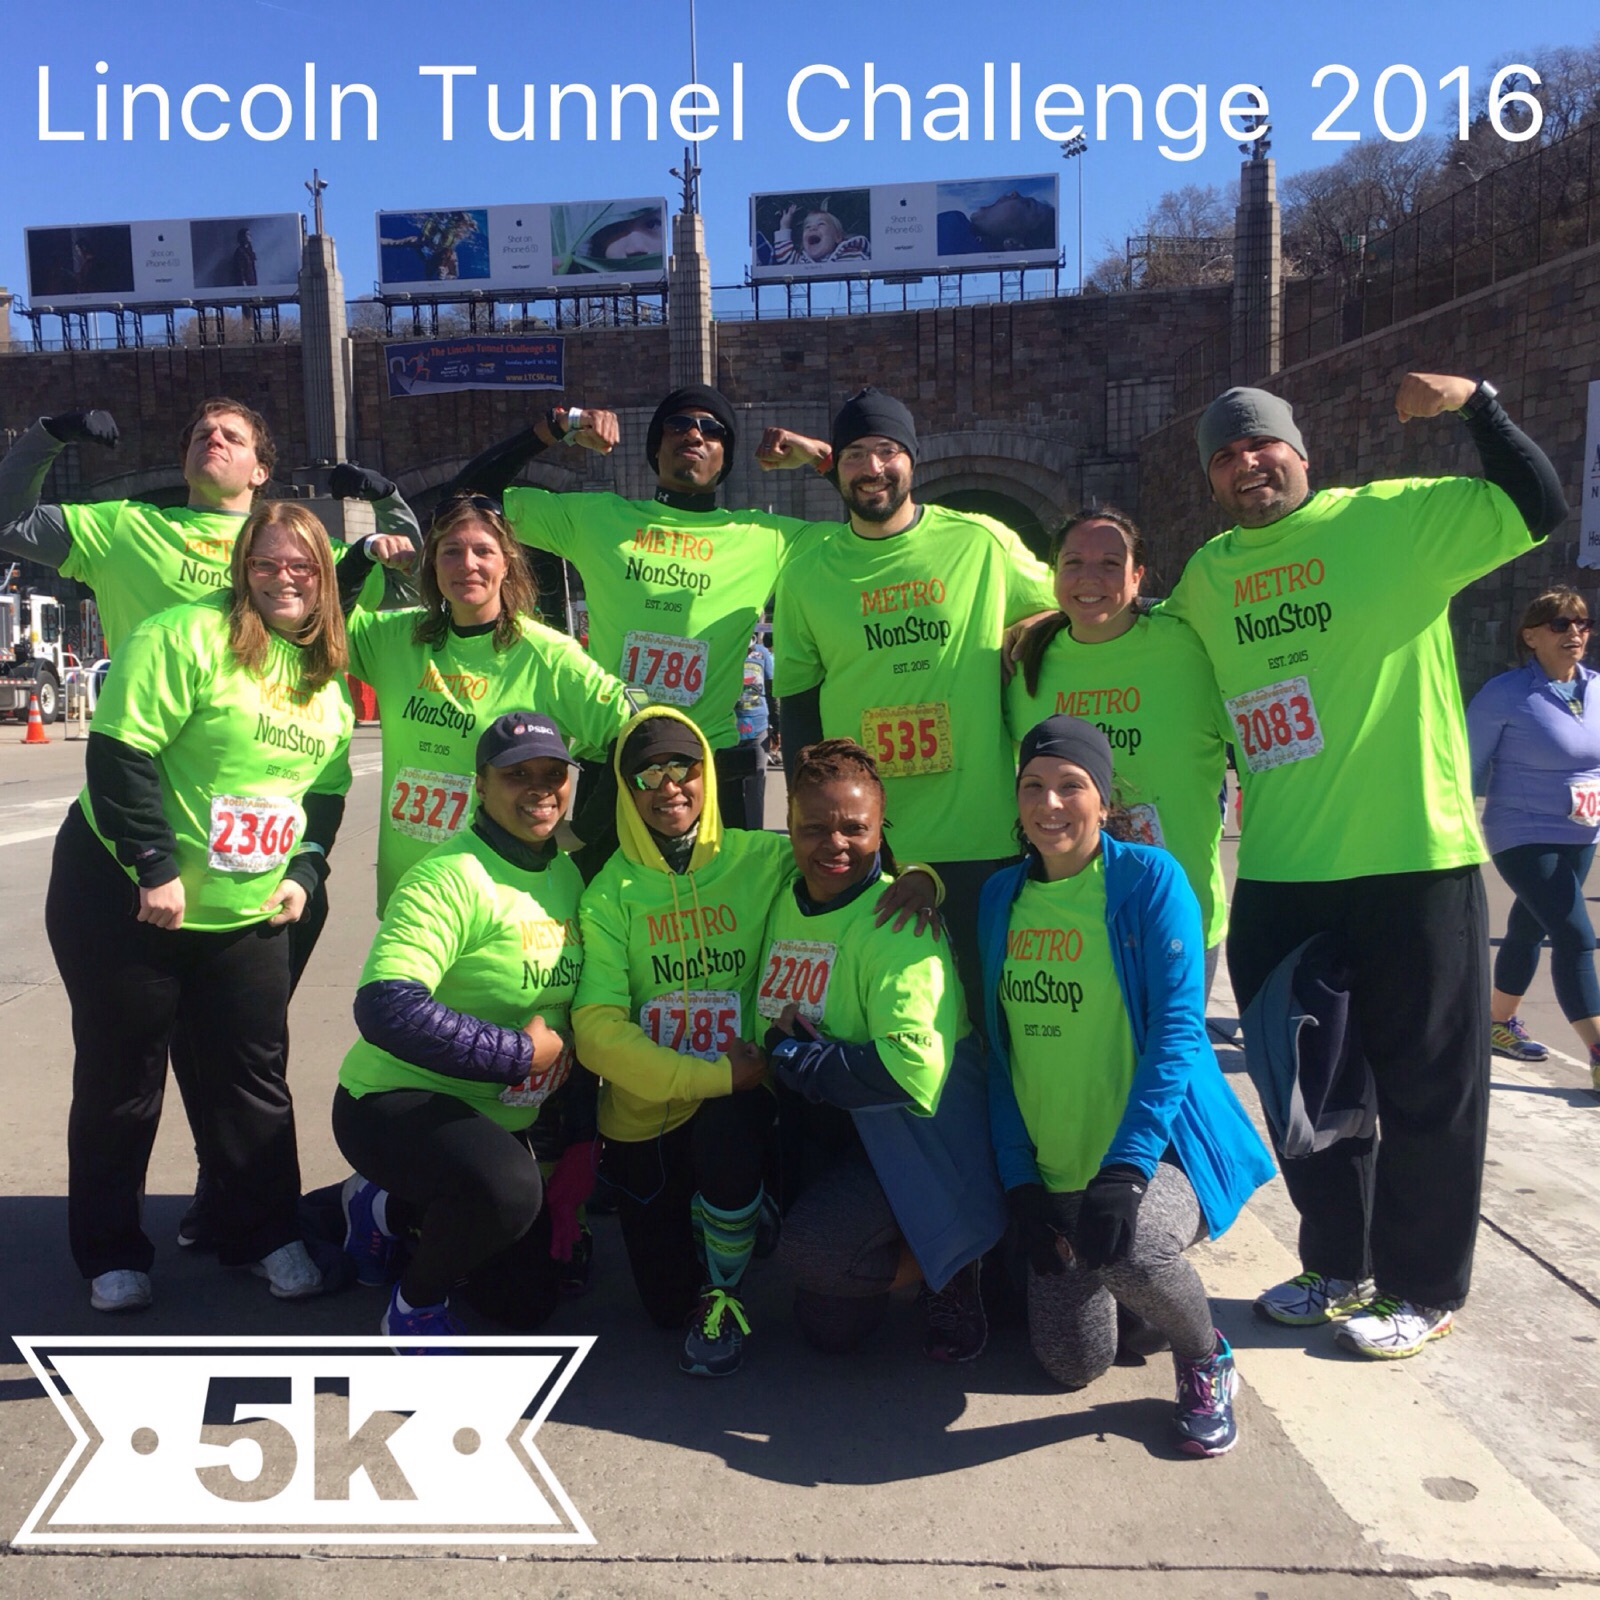 Custom T Shirts For Lincoln Tunnel Challenge Shirt Design Ideas